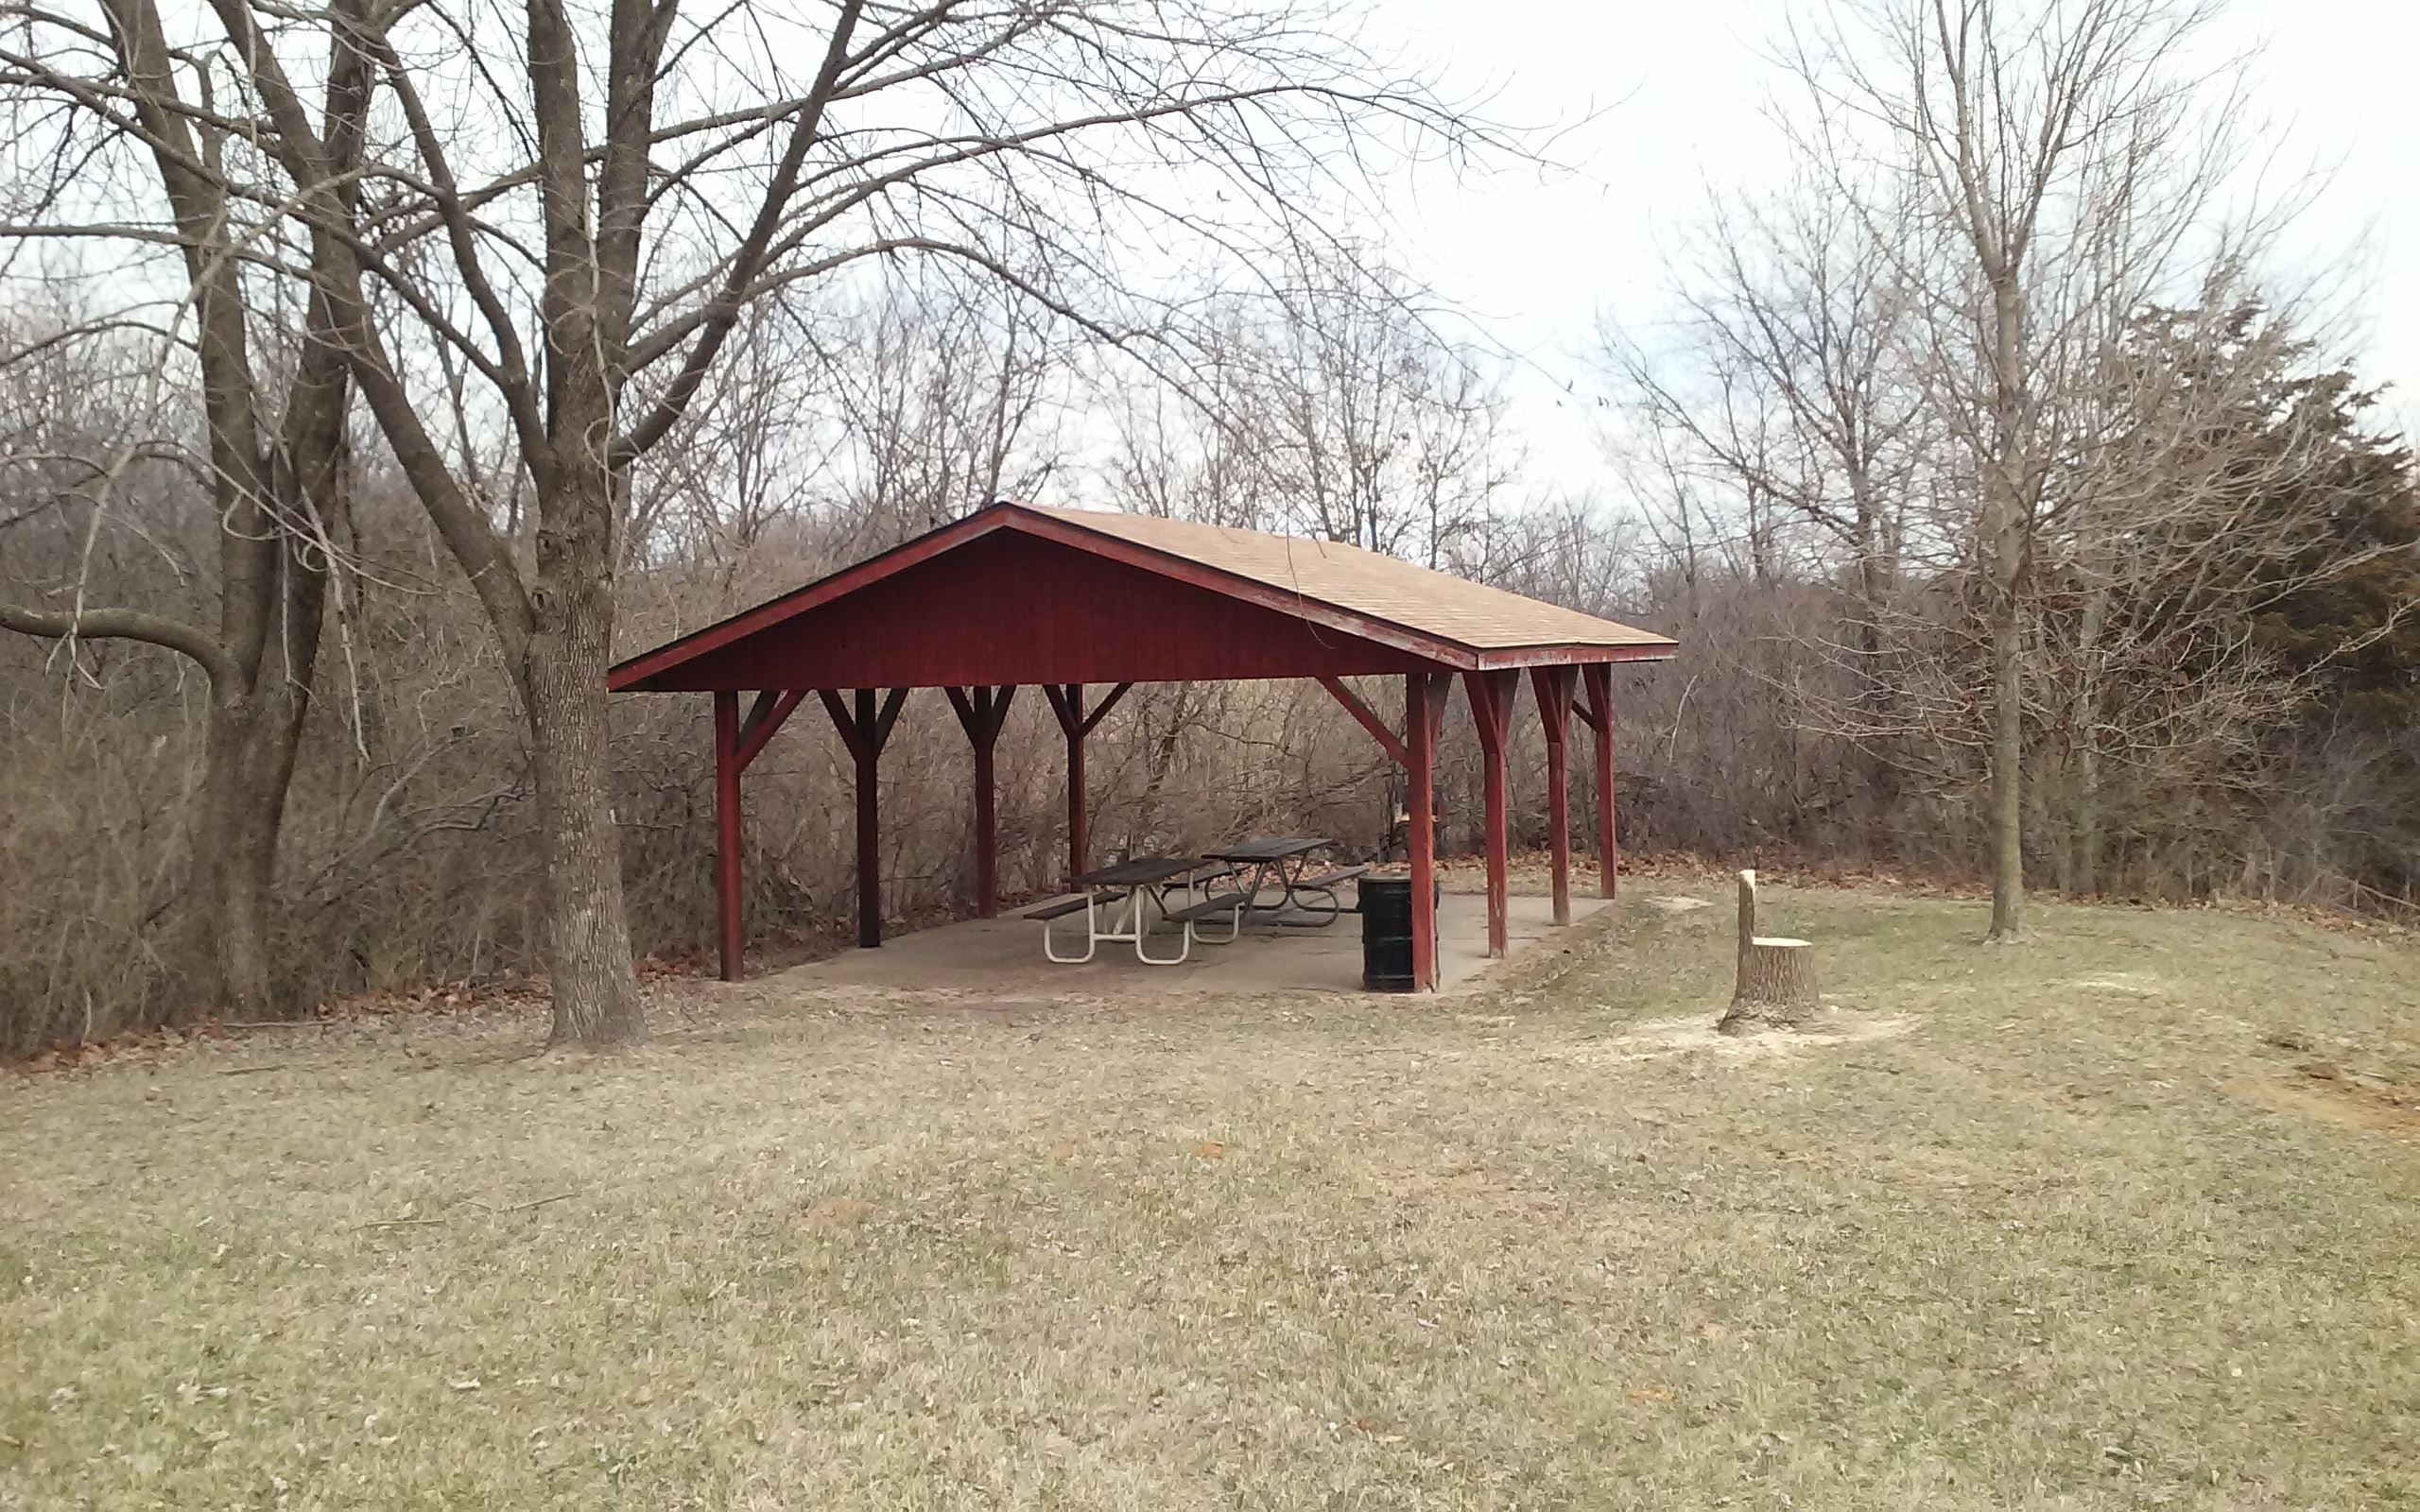 RV Campground Shelter #1